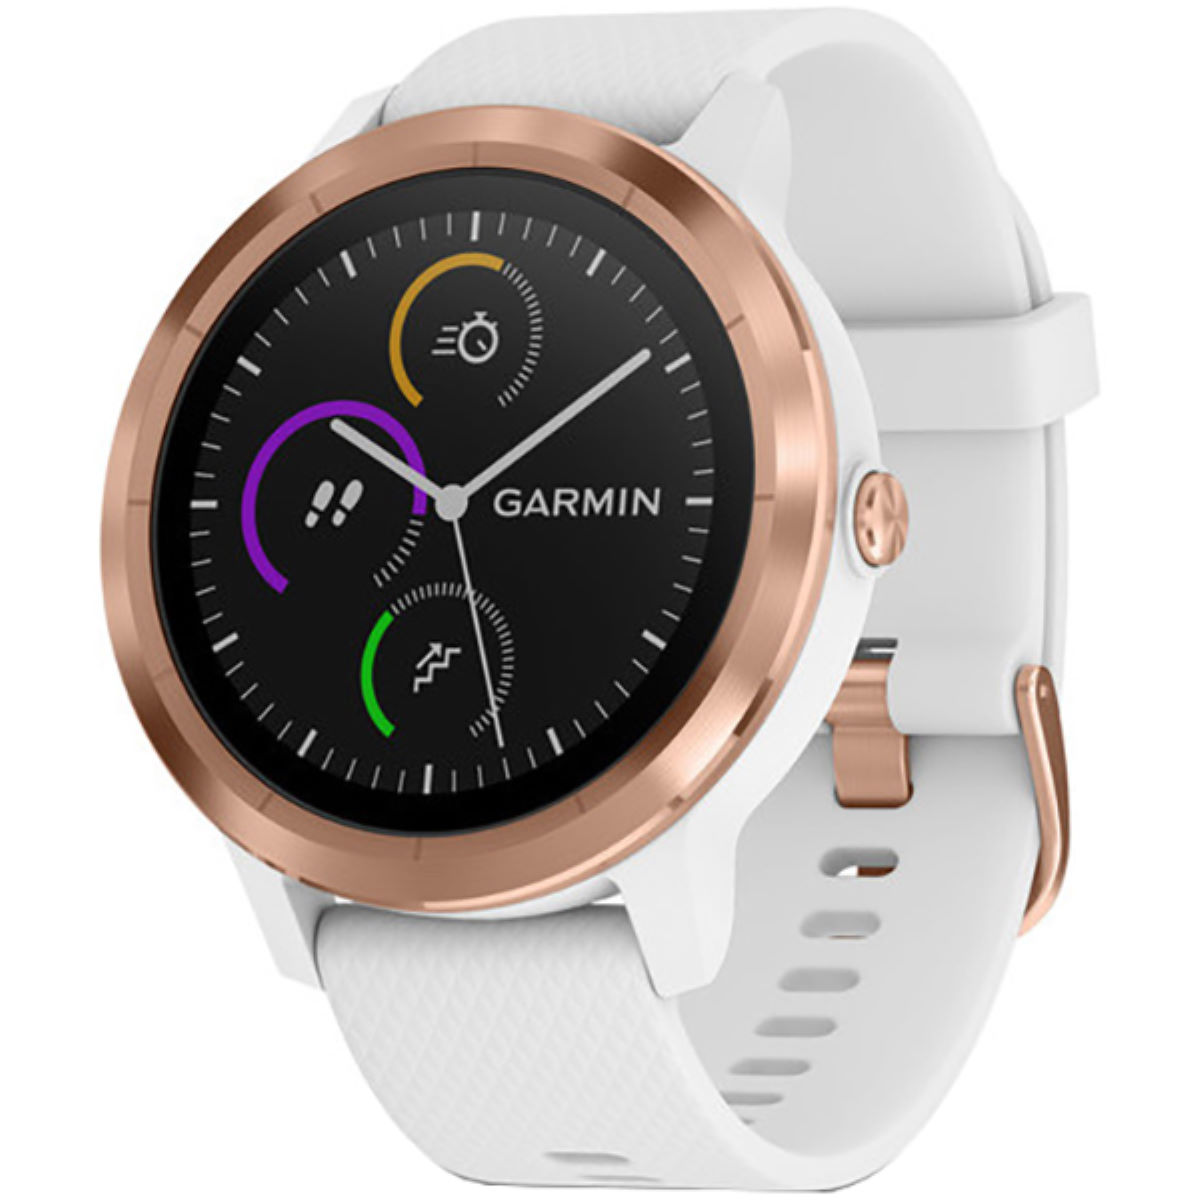 Garmin Garmin Vivoactive 3 GPS Smartwatch Silicone   Watches